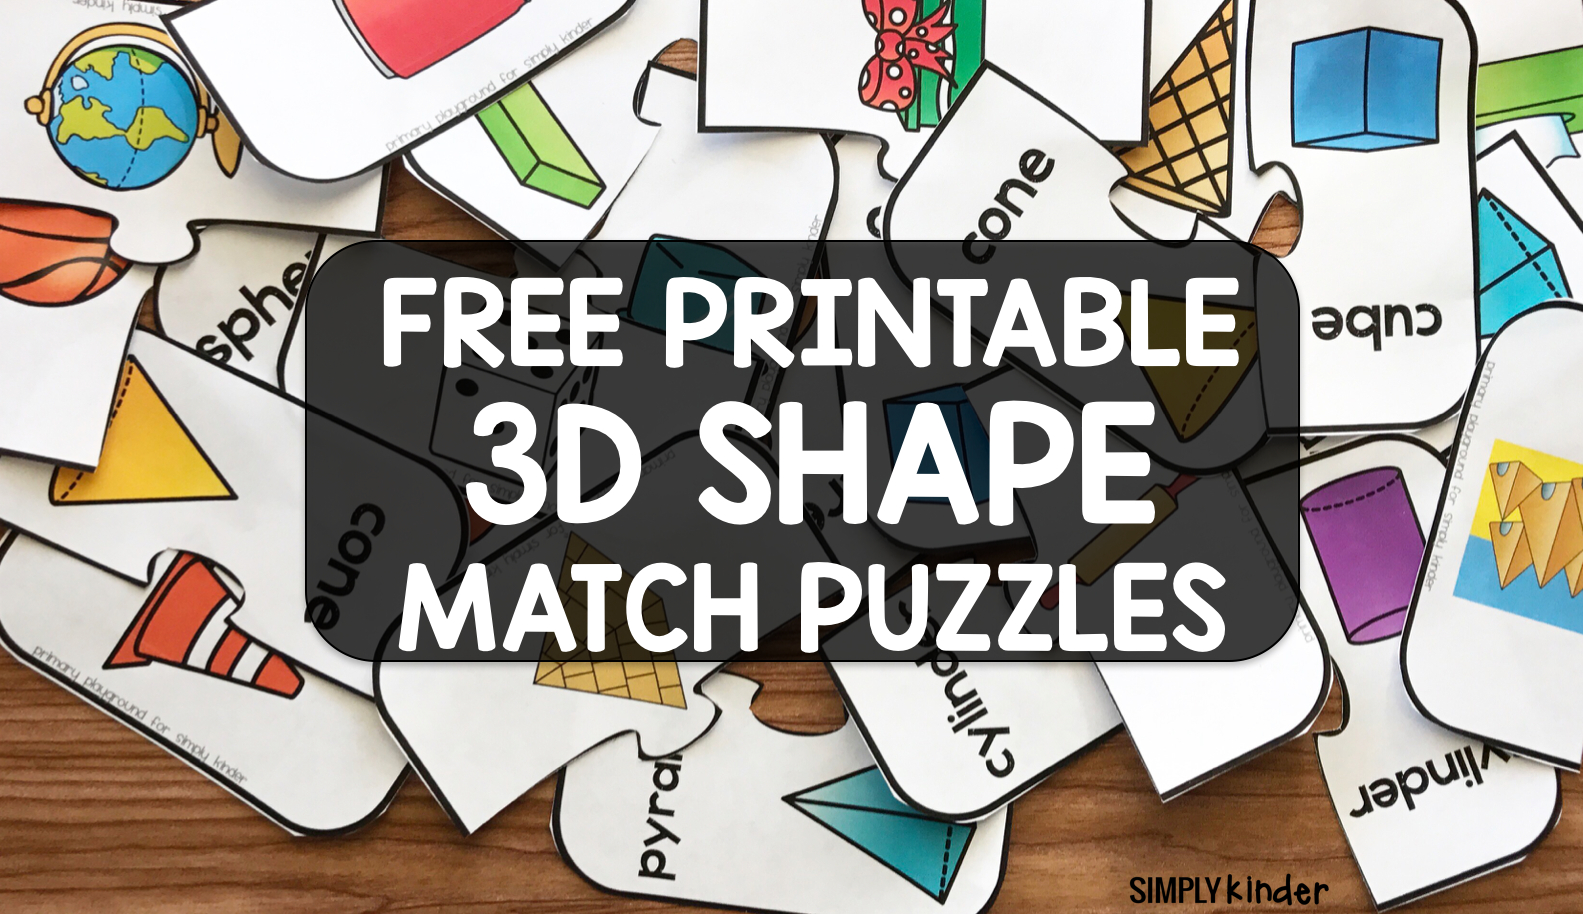 Free Printable 3D Shape Puzzles - Simply Kinder - Free Printable 3D Puzzles